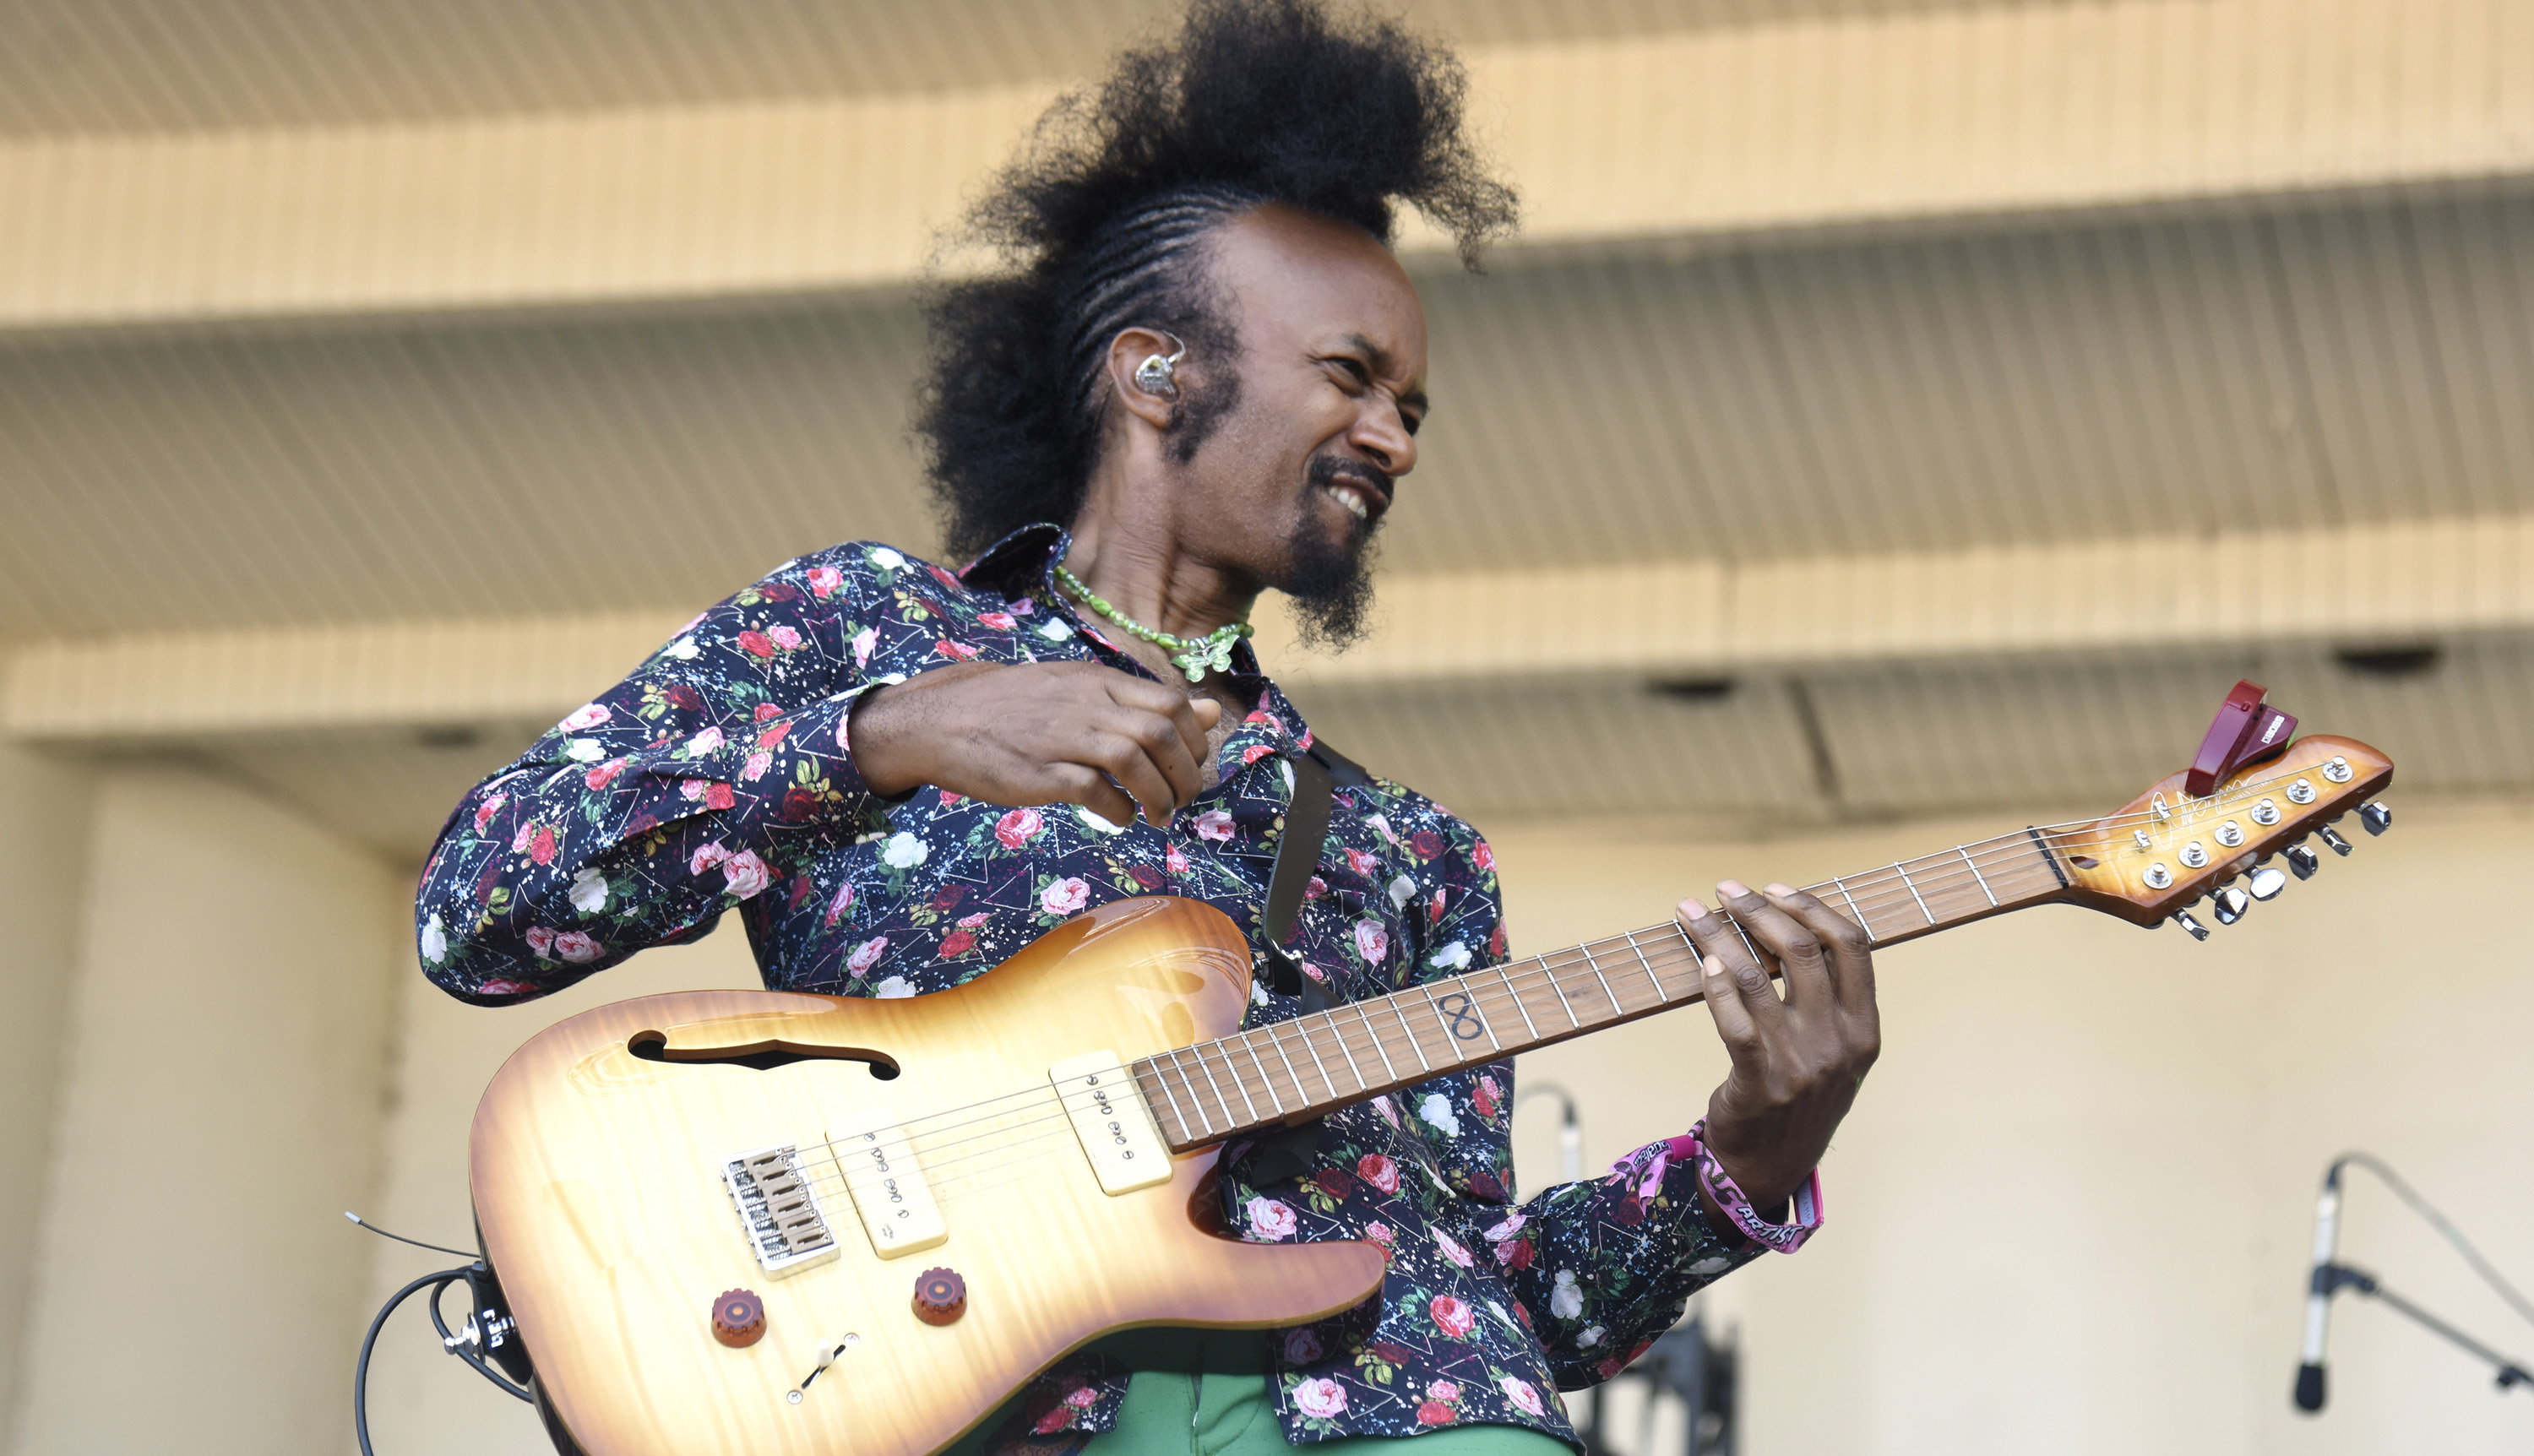 Fantastic Negrito performs during 2019 Lollapalooza day three at Grant Park